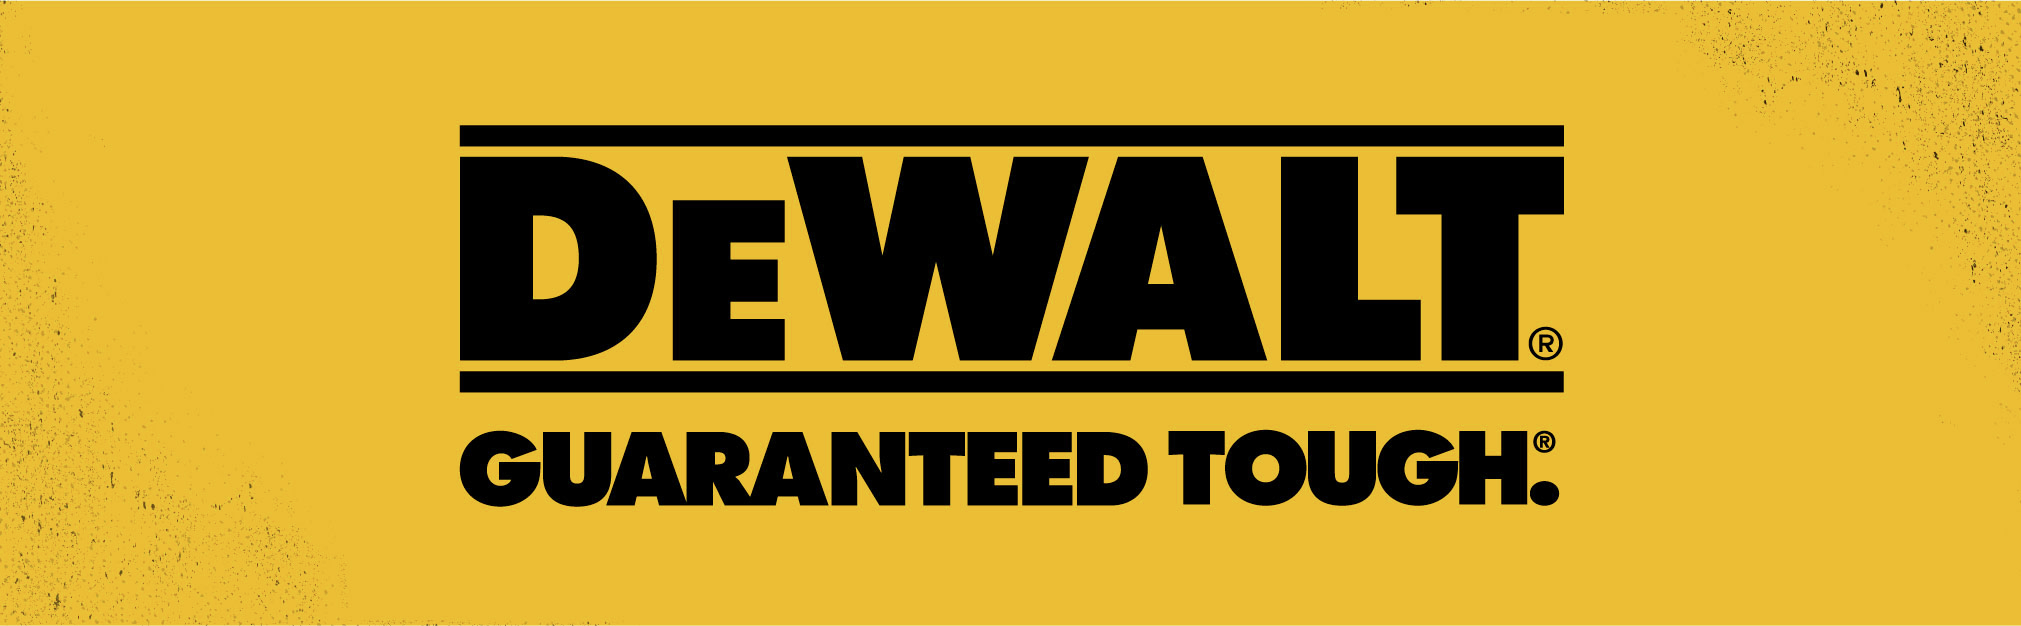 DeWalt Guaranteed Tough